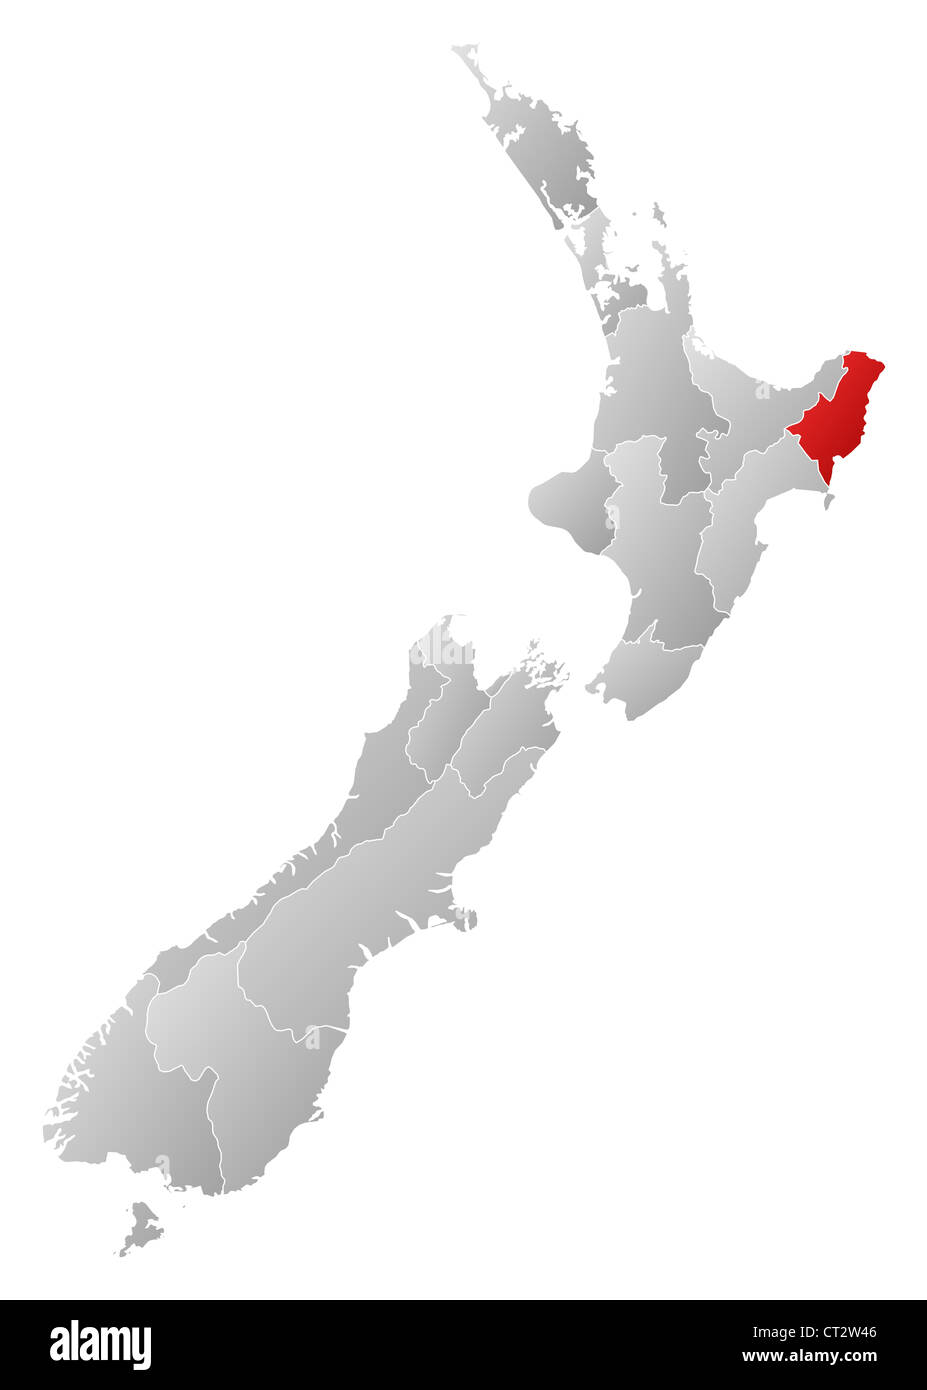 Political map of New Zealand with the several regions where ... on bay of plenty new zealand map, marahau new zealand map, auckland new zealand map, mount ngauruhoe new zealand map, waiotapu new zealand map, mount ruapehu new zealand map, piha new zealand map, waikato new zealand map, franz josef glacier new zealand map, lake pukaki new zealand map, hot water beach new zealand map, manukau new zealand map, mount taranaki new zealand map, broadmeadows new zealand map, bay of islands new zealand map, dunedin new zealand map, queen charlotte sound new zealand map, feilding new zealand map, chatham islands new zealand map,